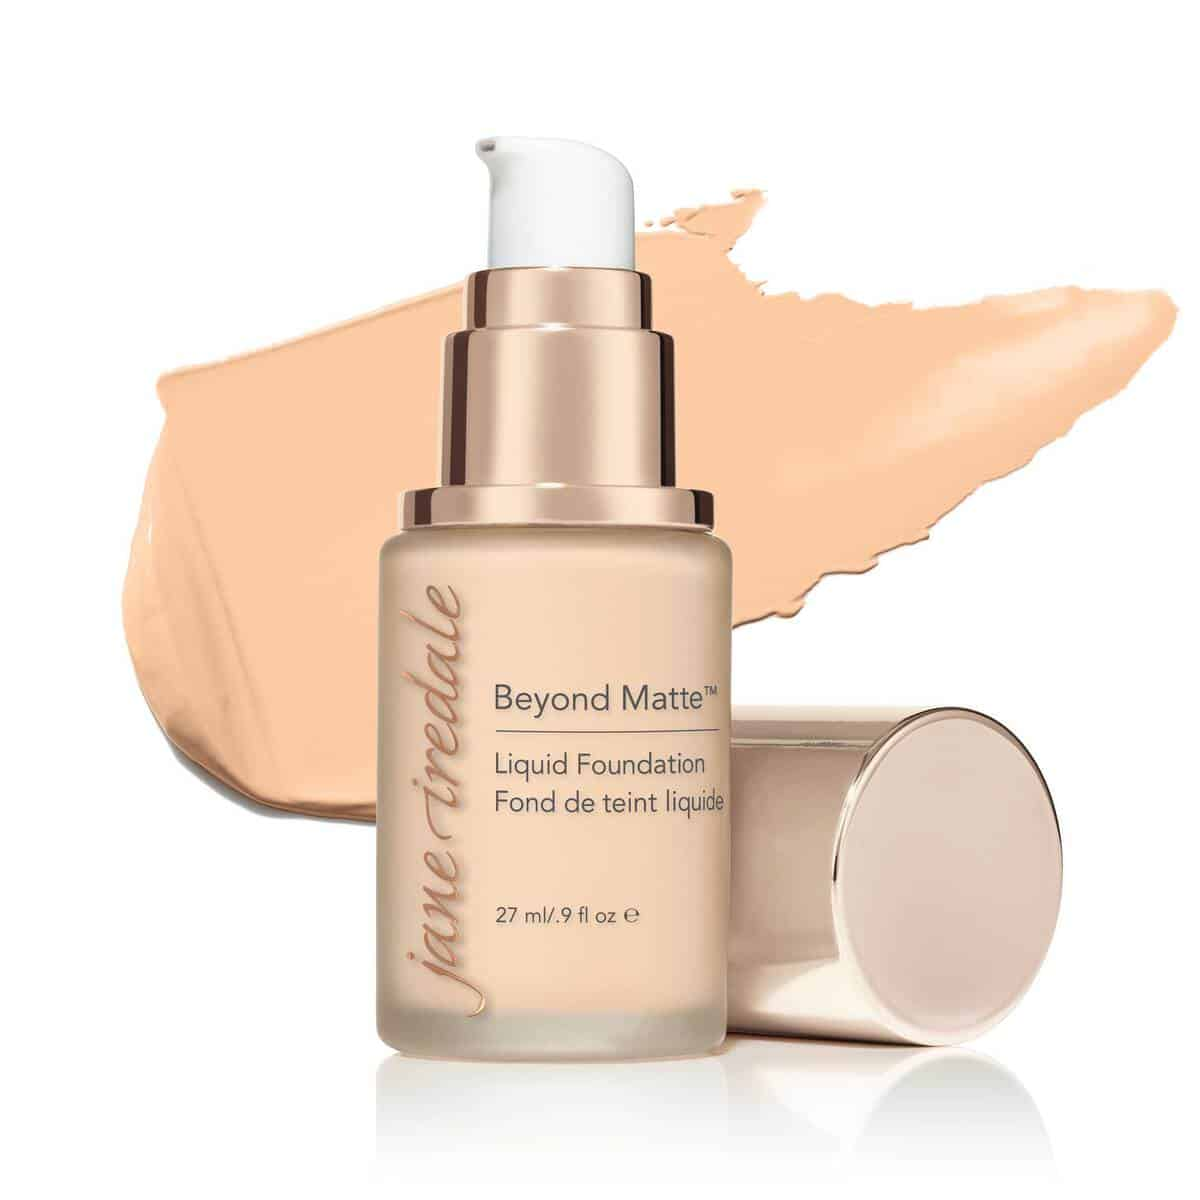 M1 Beyond Matte Liquid Foundation